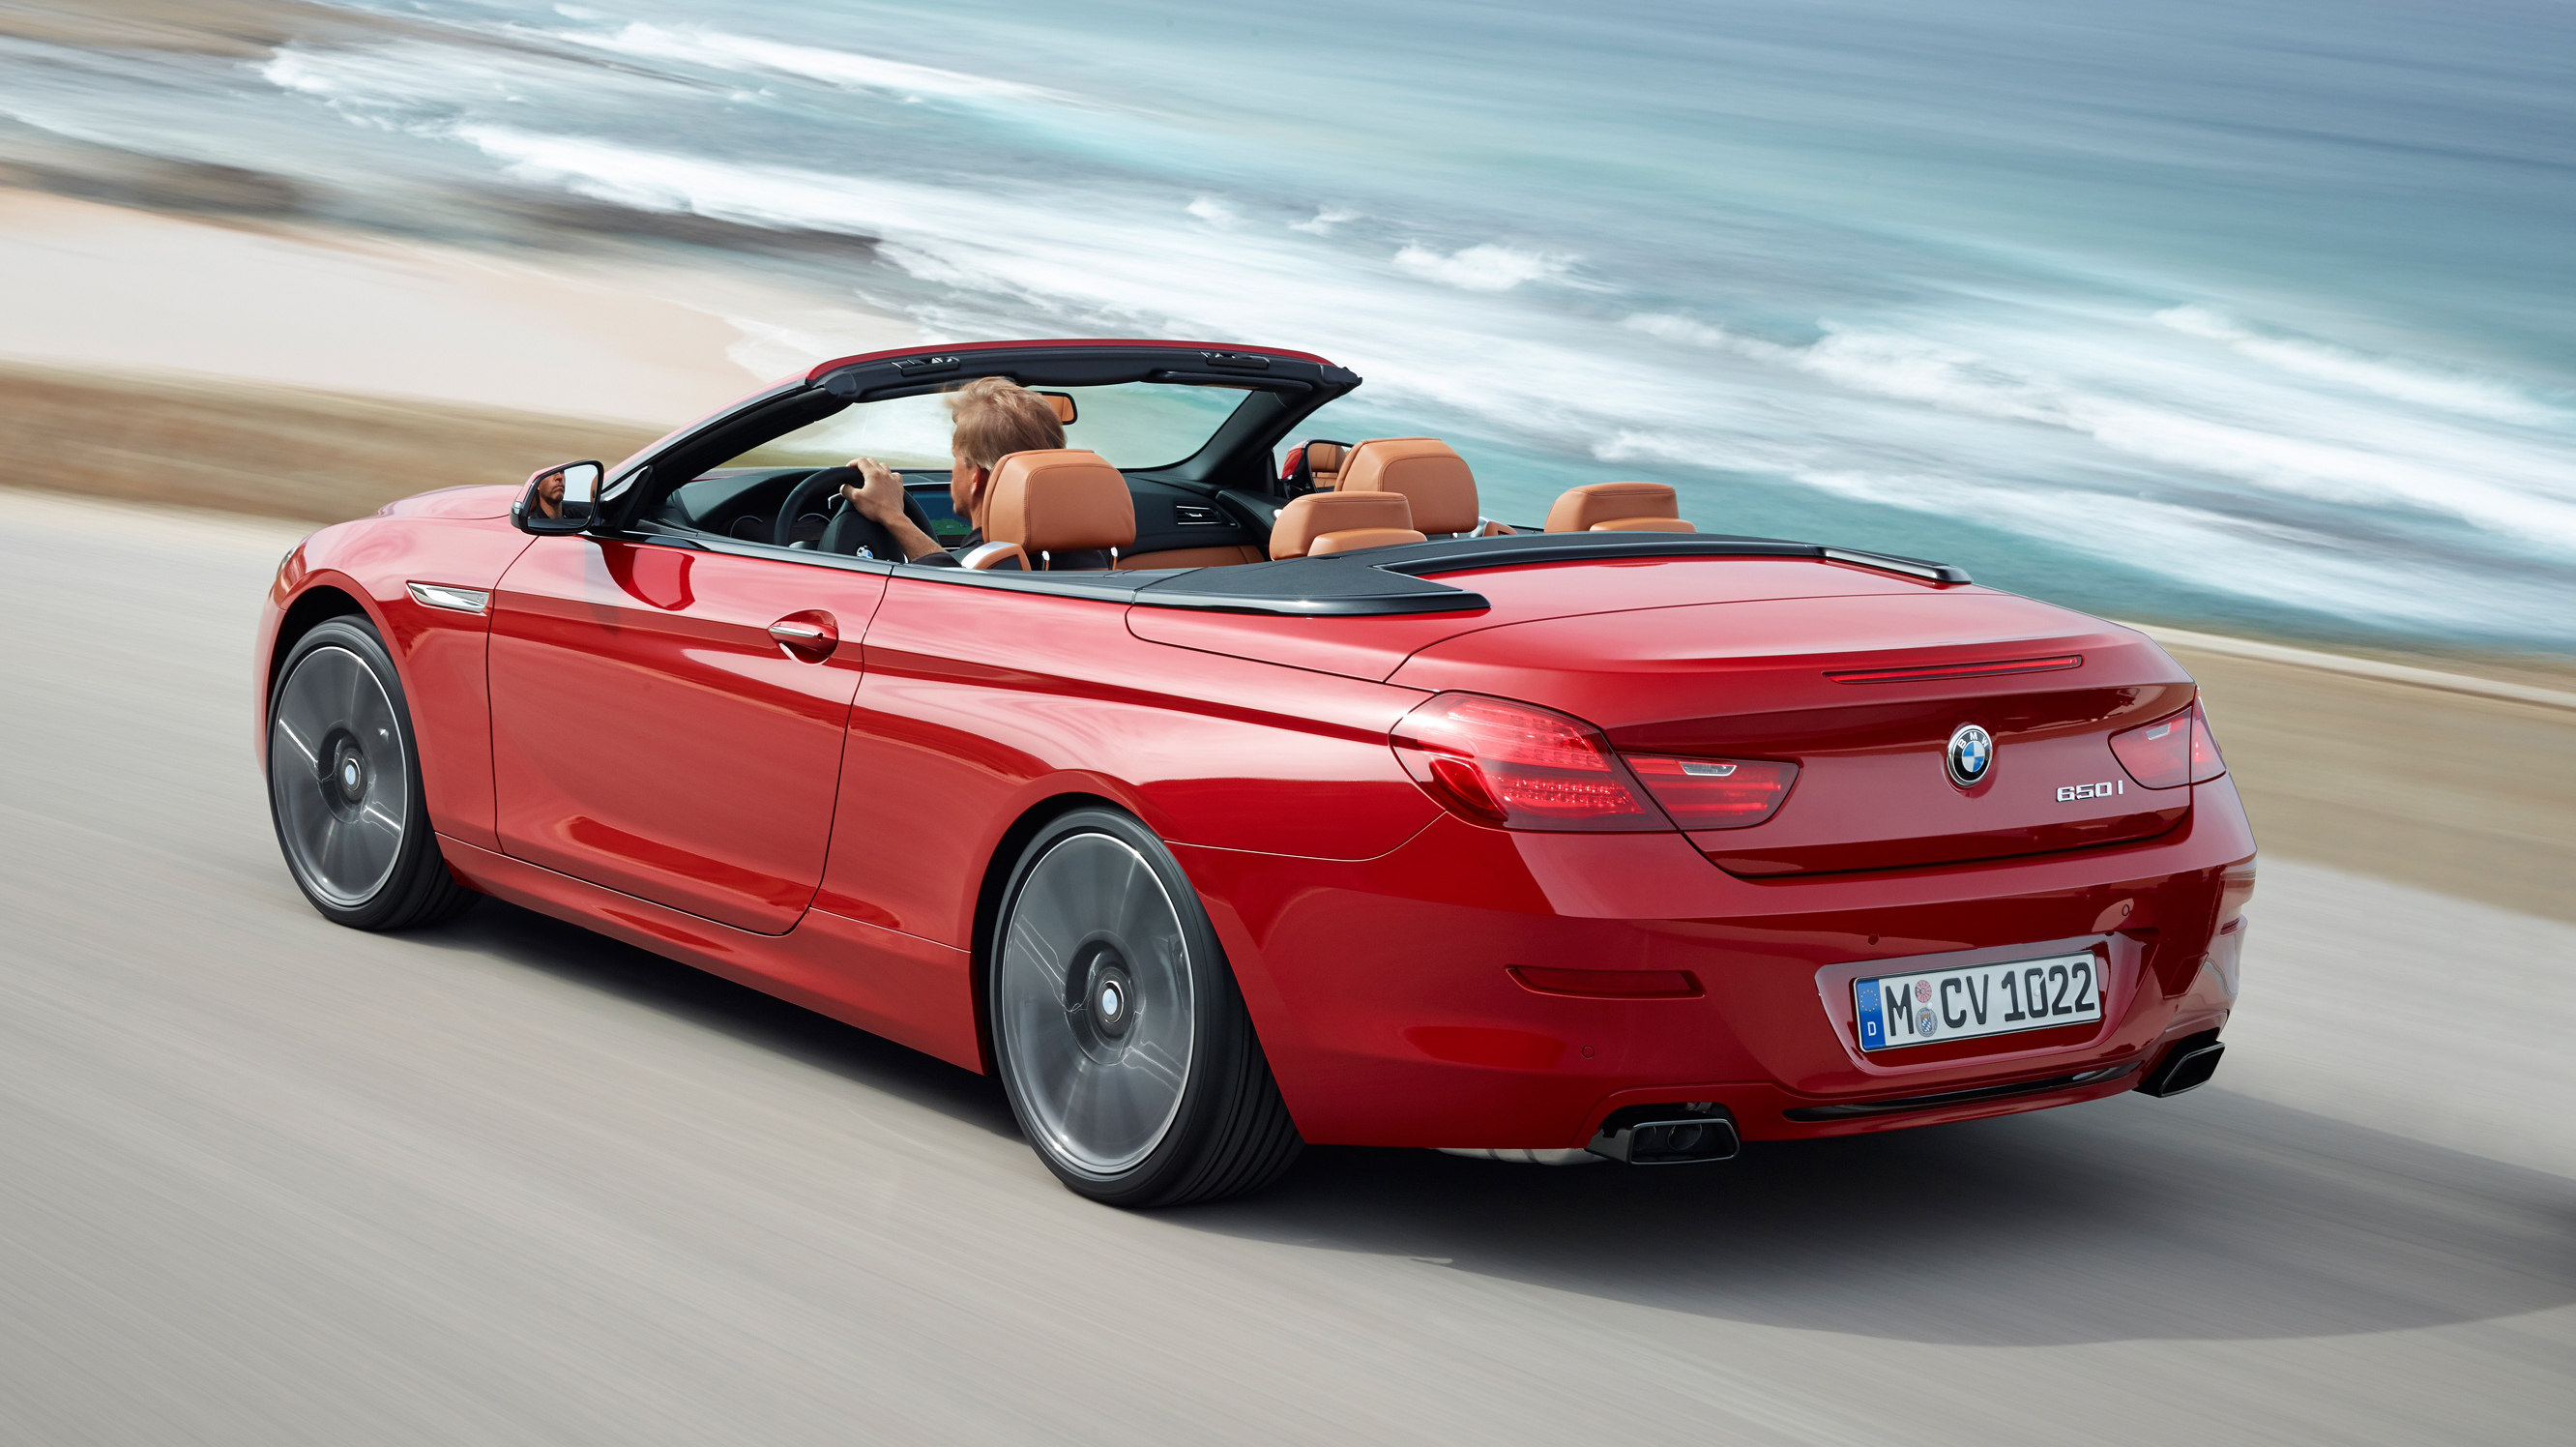 design speed bmw used d technik b gmbh by cars convertible top hler